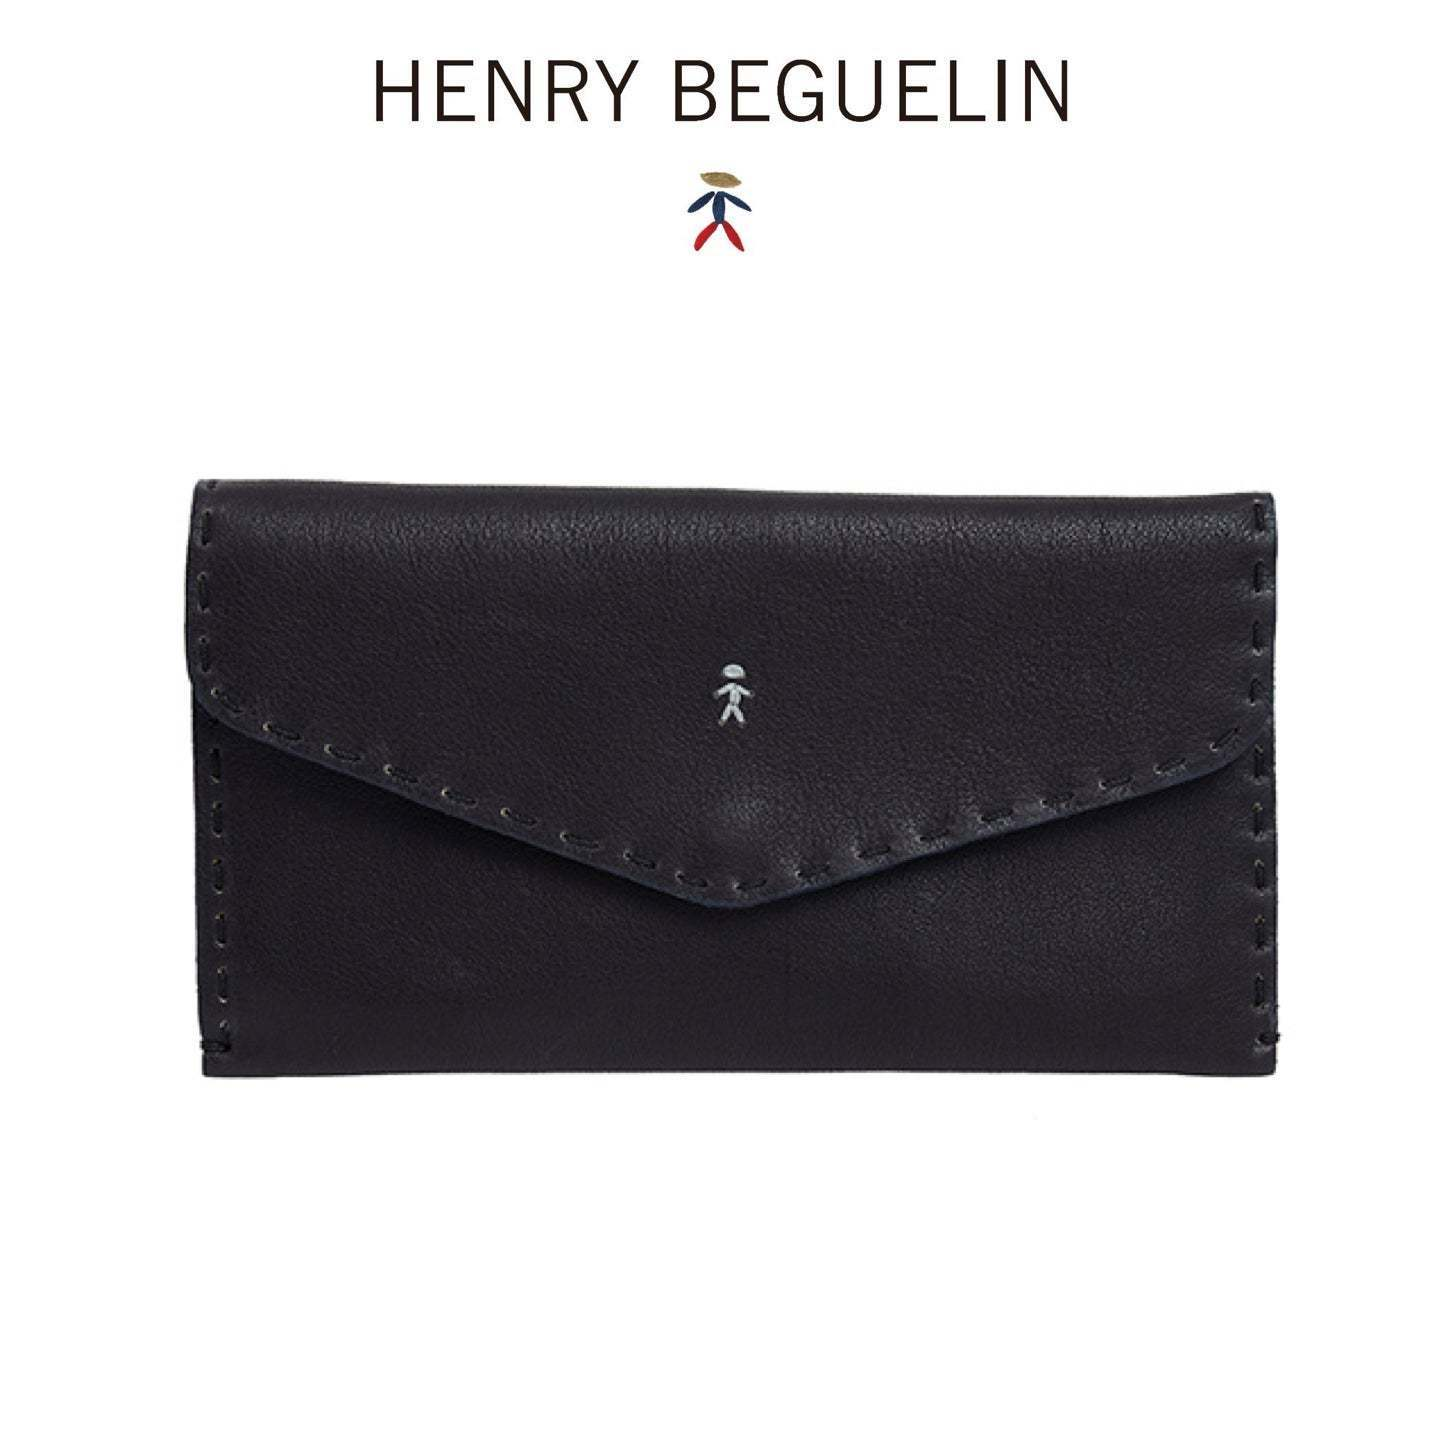 ★ HENRY BEGUELIN ★ CRISS SFOD. MESSICO フラップ長財布 (HENRY BEGUELIN/長財布) 60690745